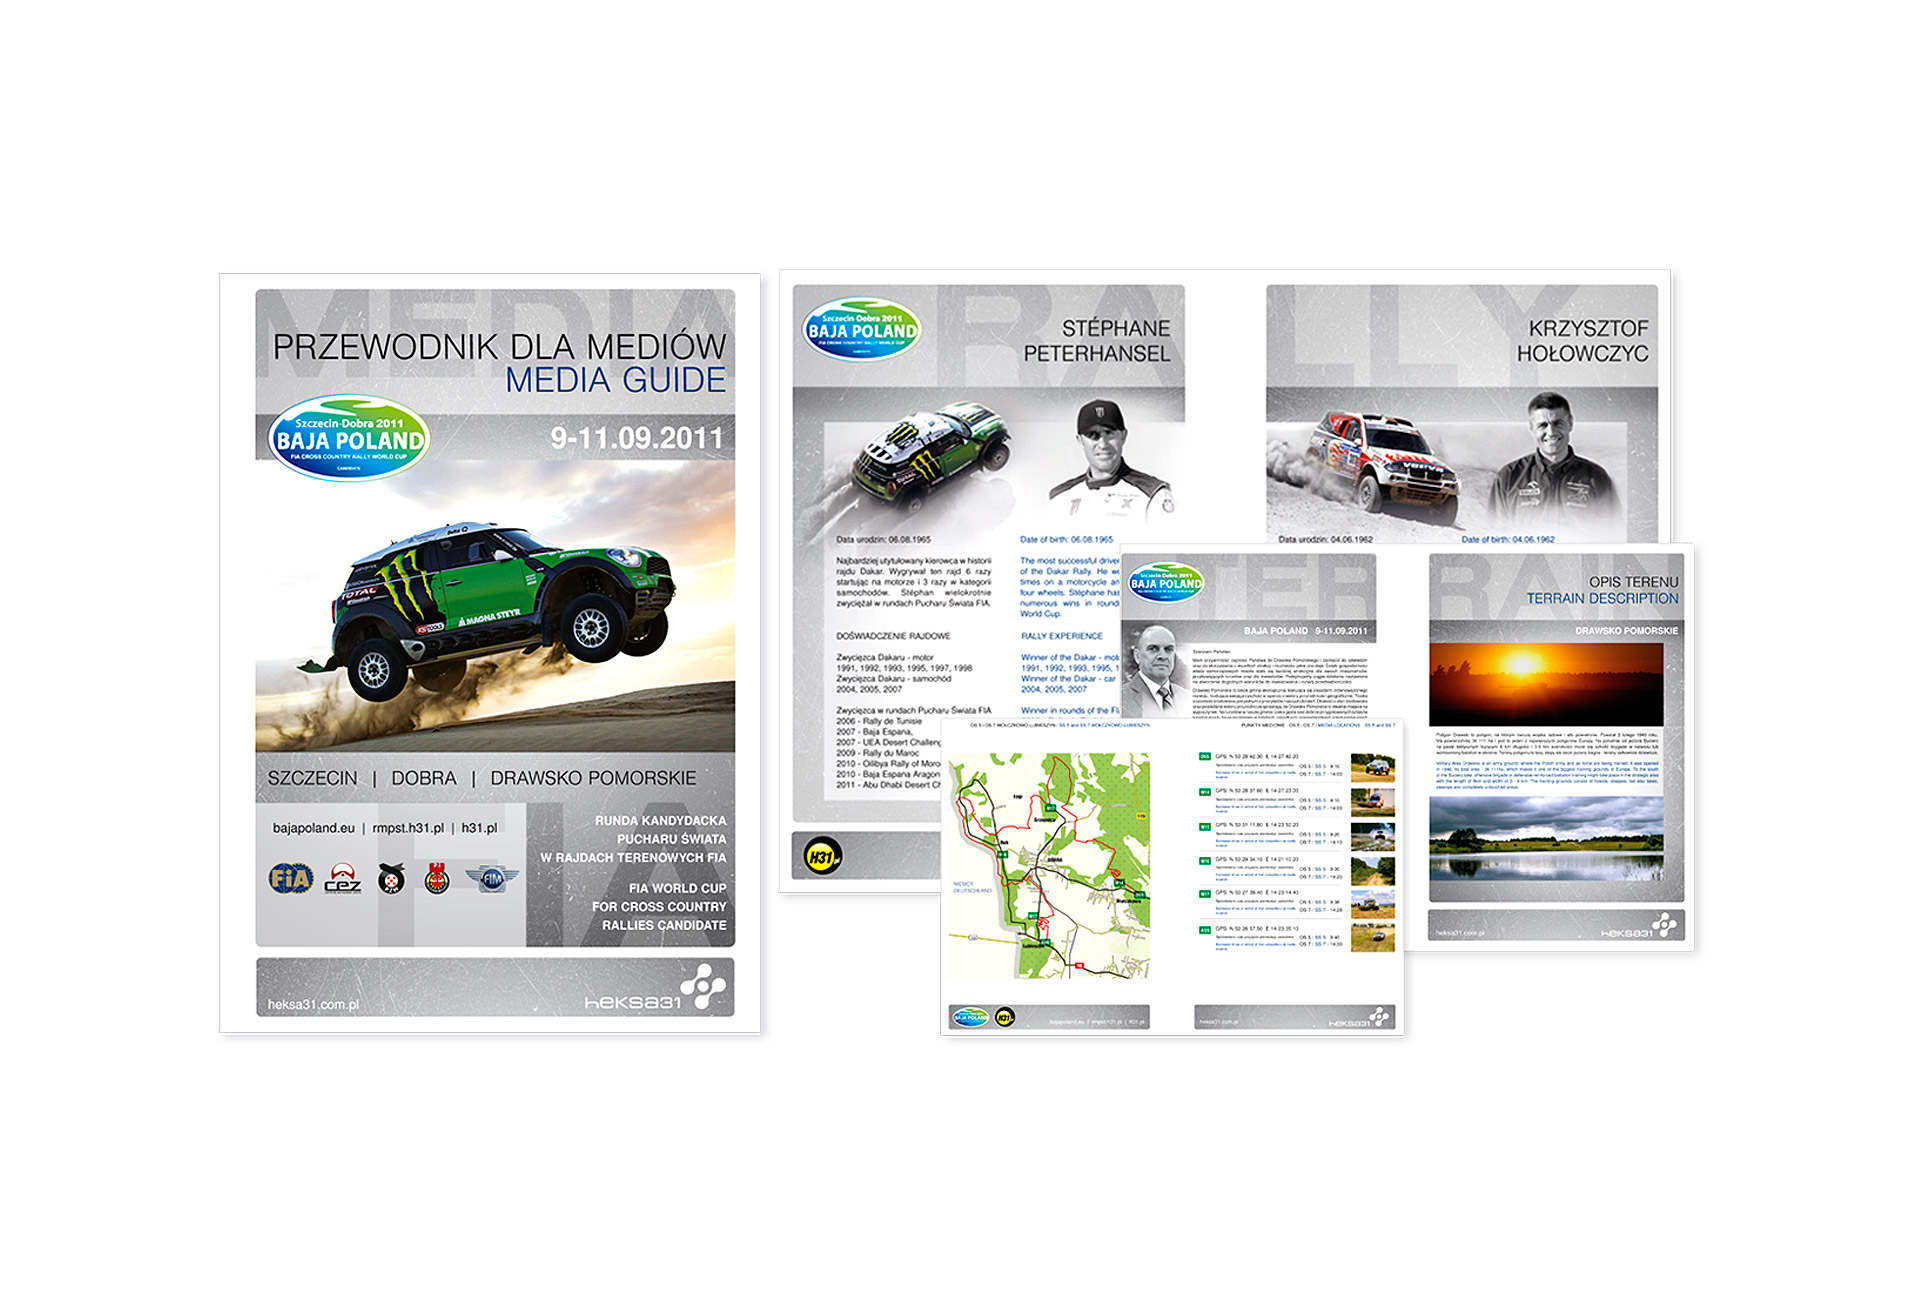 baja poland media guide